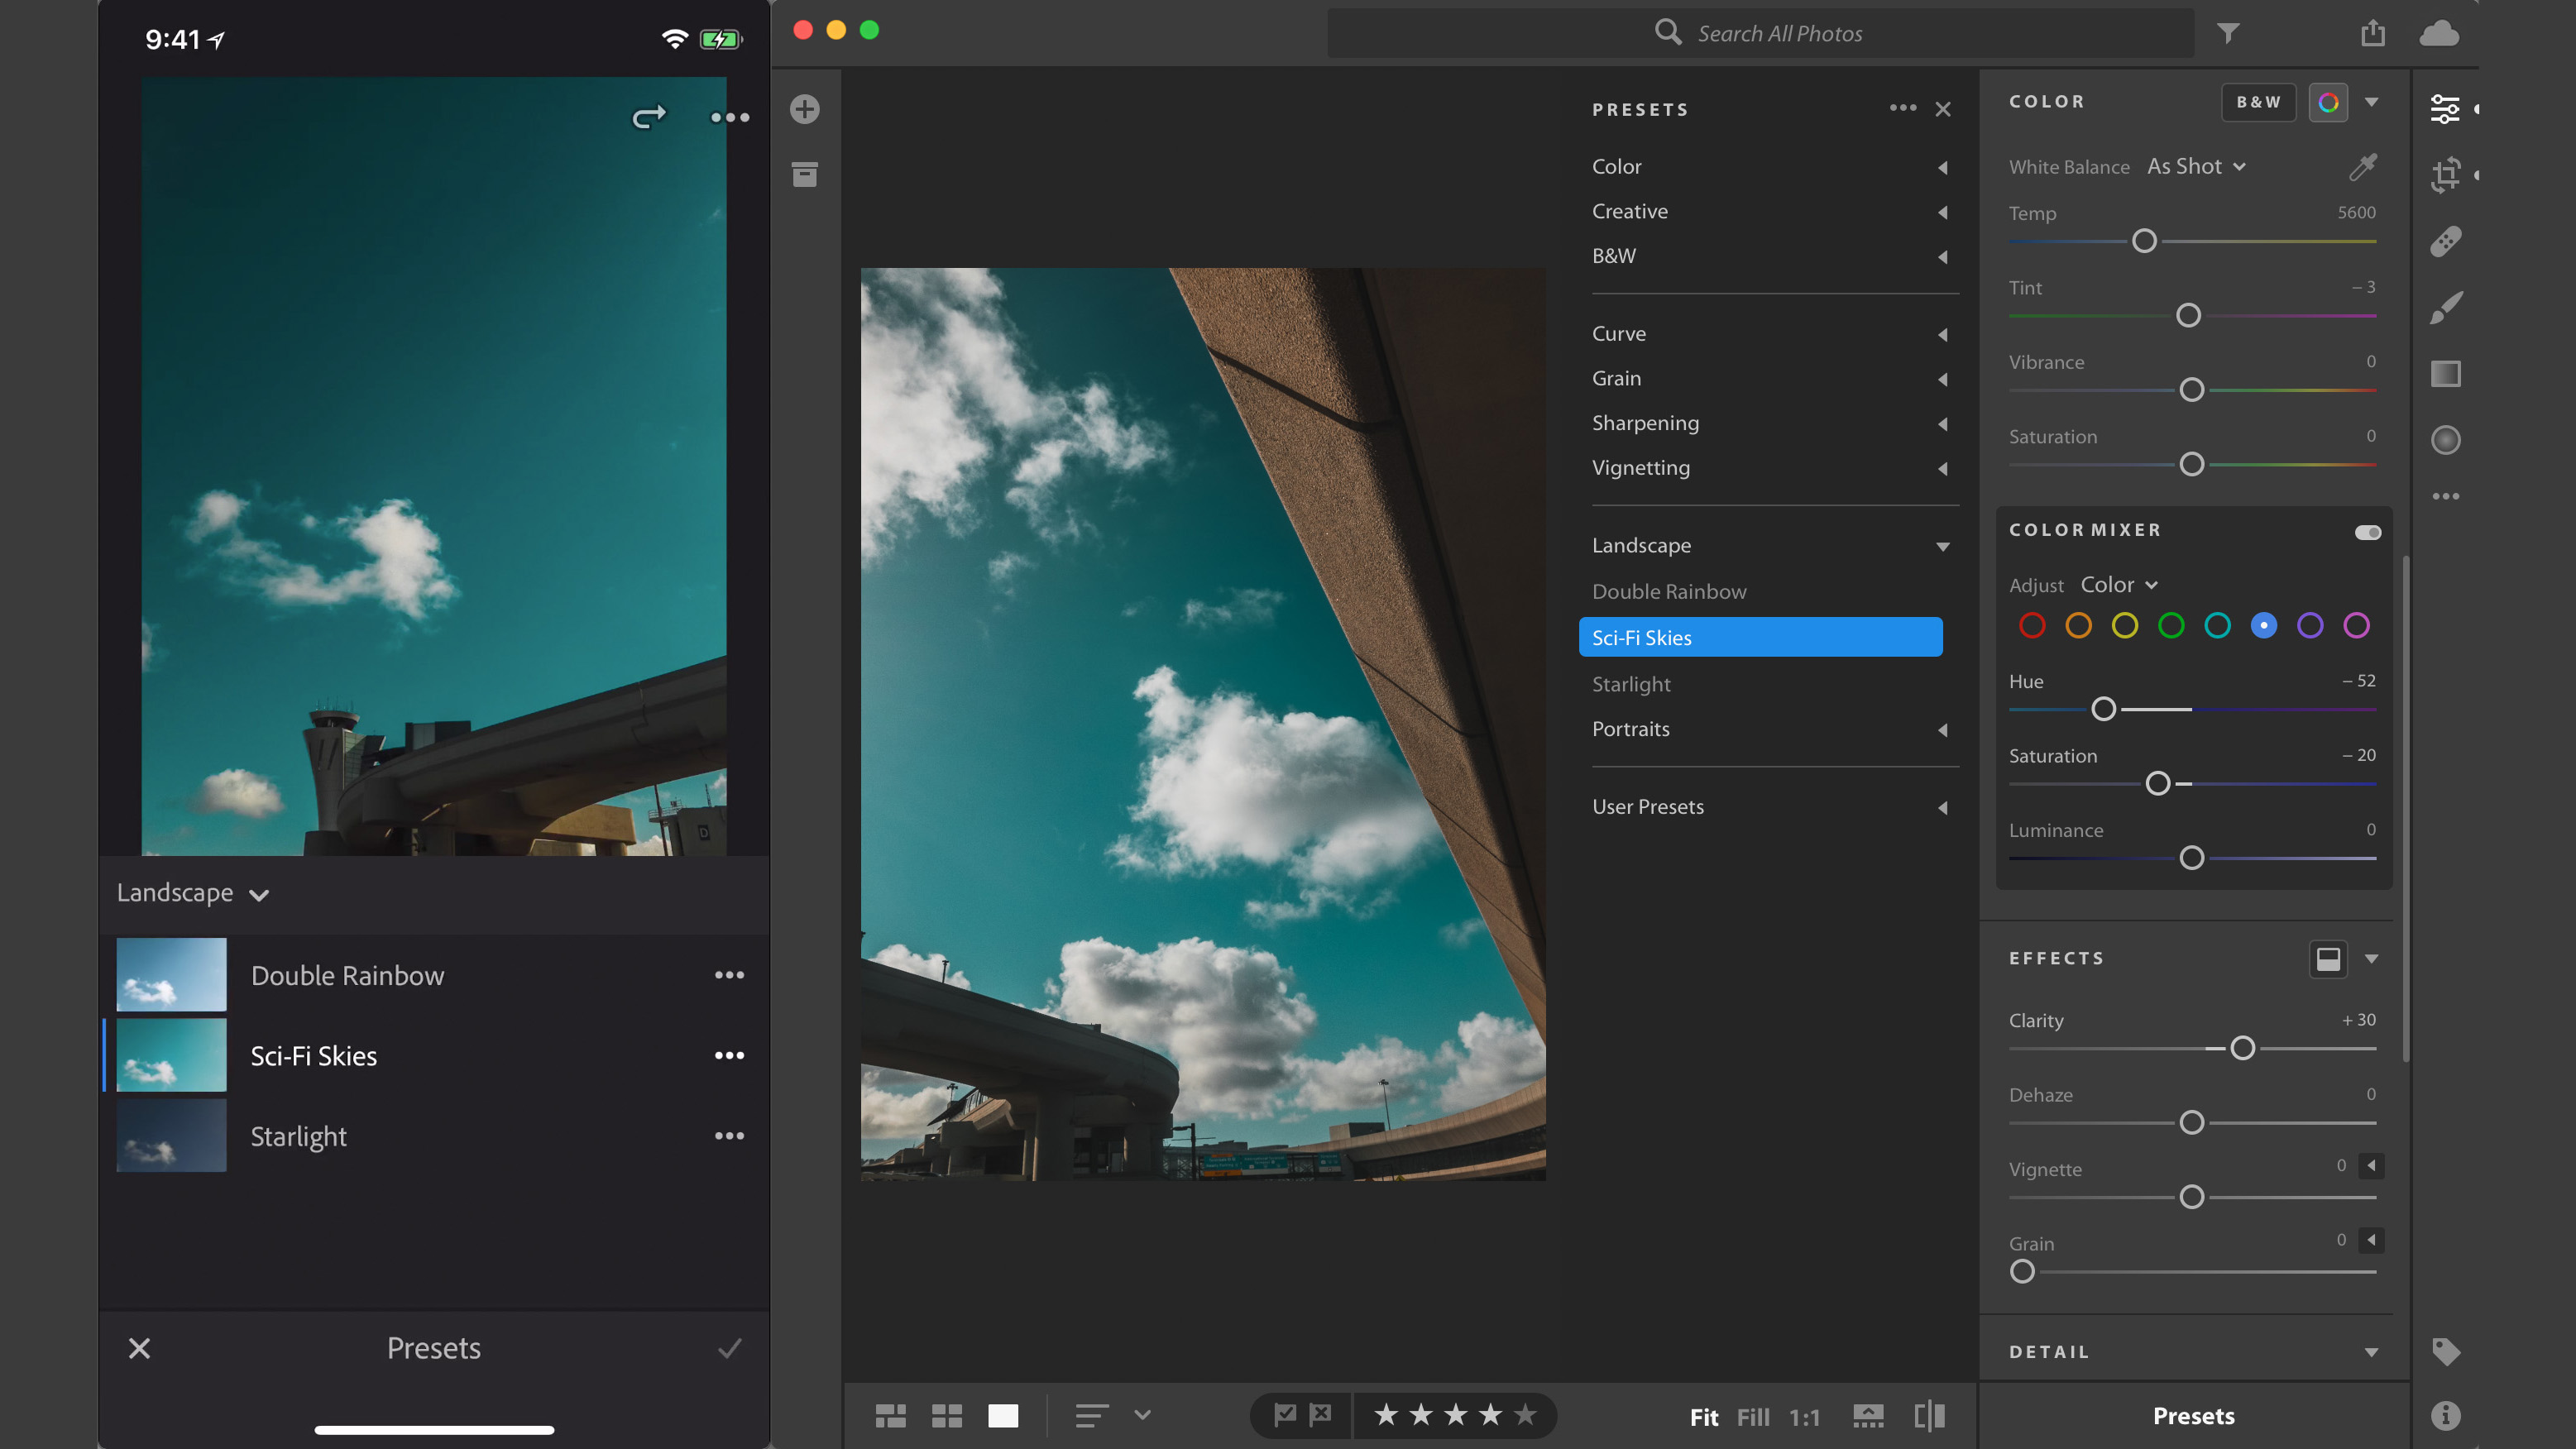 Adobe announces significant updates to Lightroom ecosystem